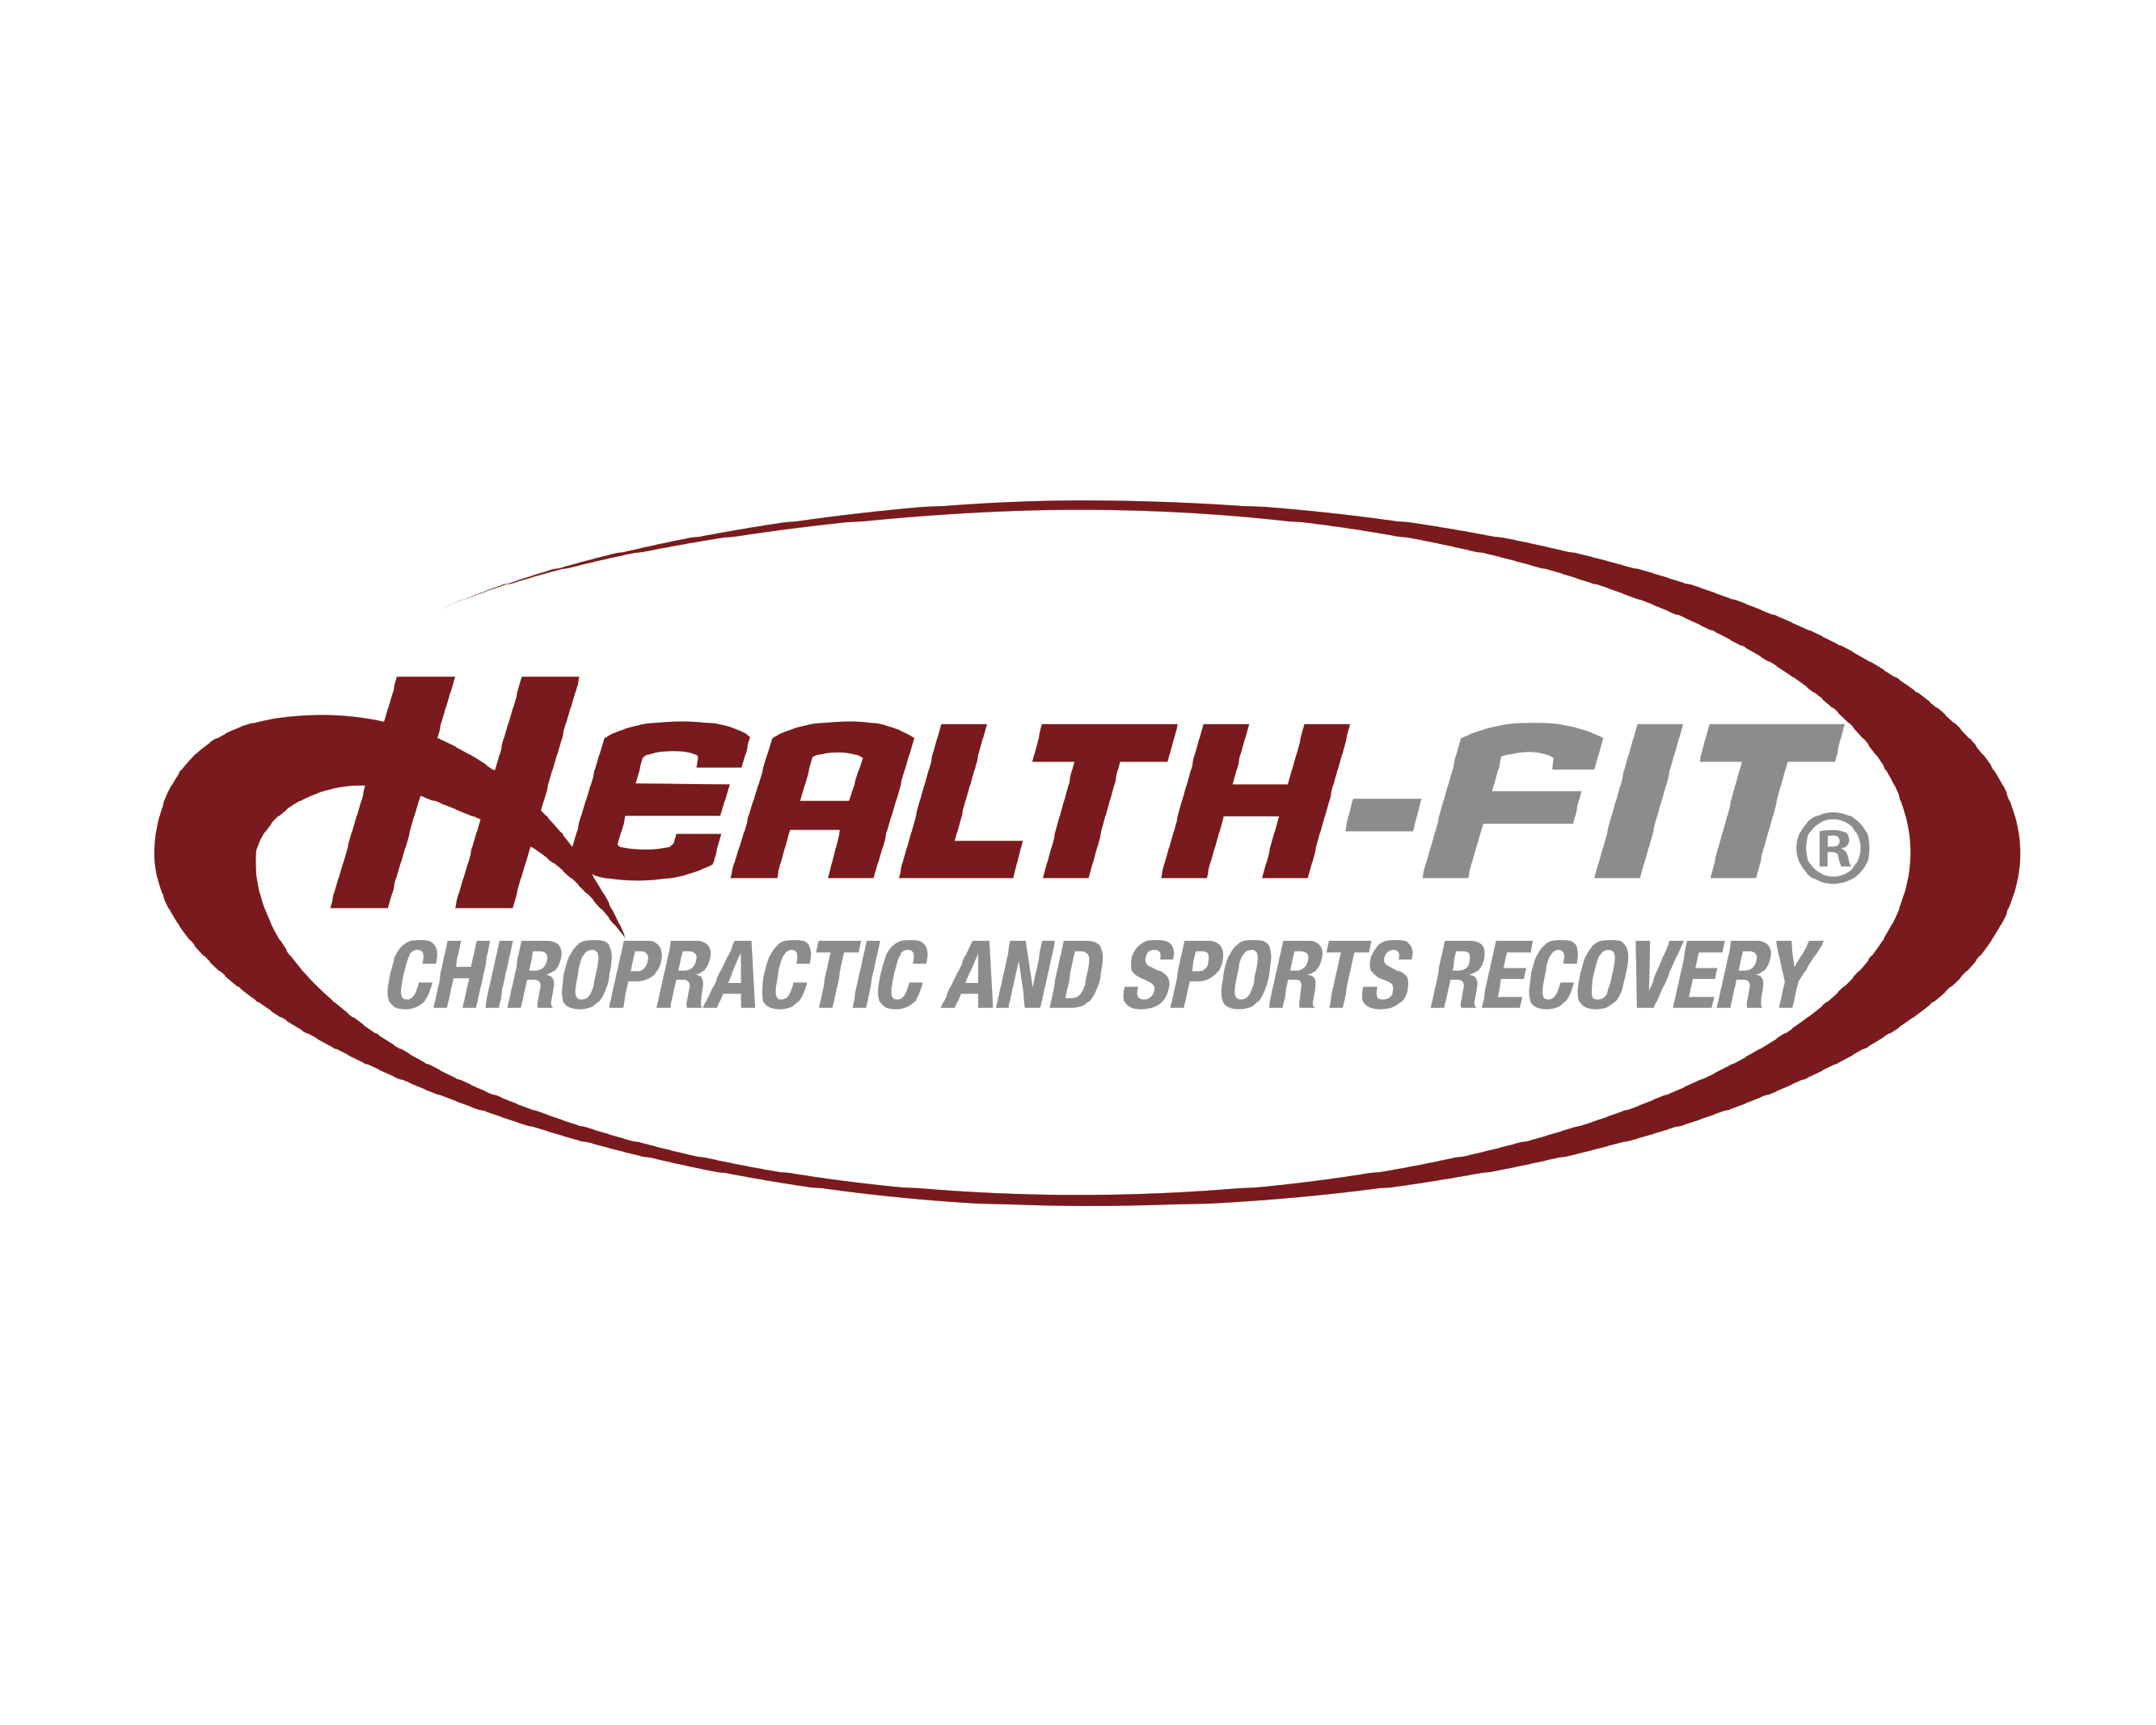 Health-Fit Chiropractic & Sports Recovery